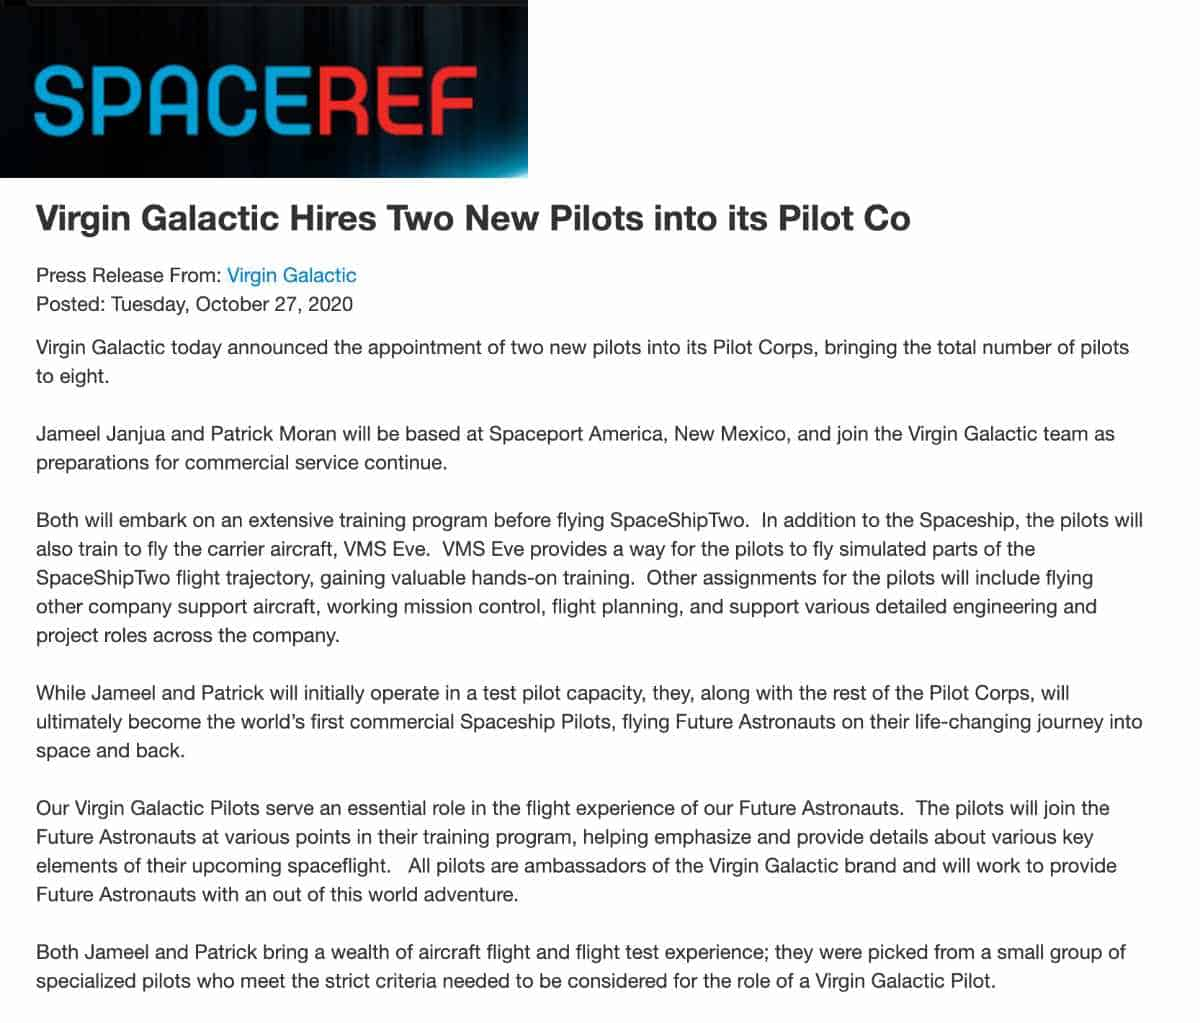 virgin galactic hires two new pilots for its pilot corps